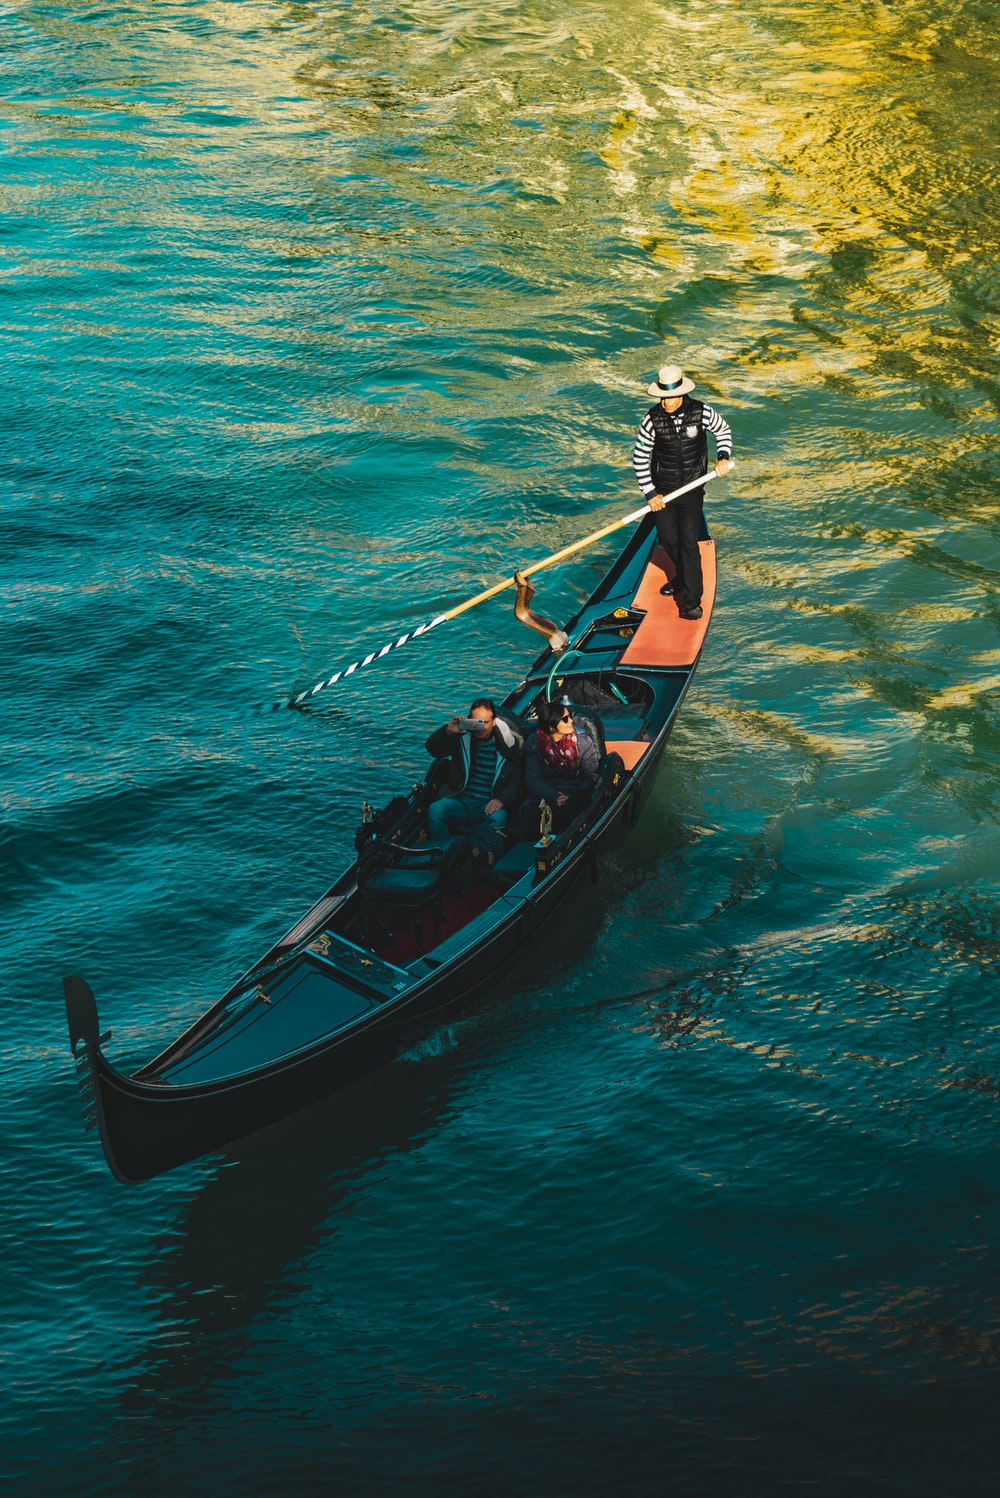 people on boat on body of water